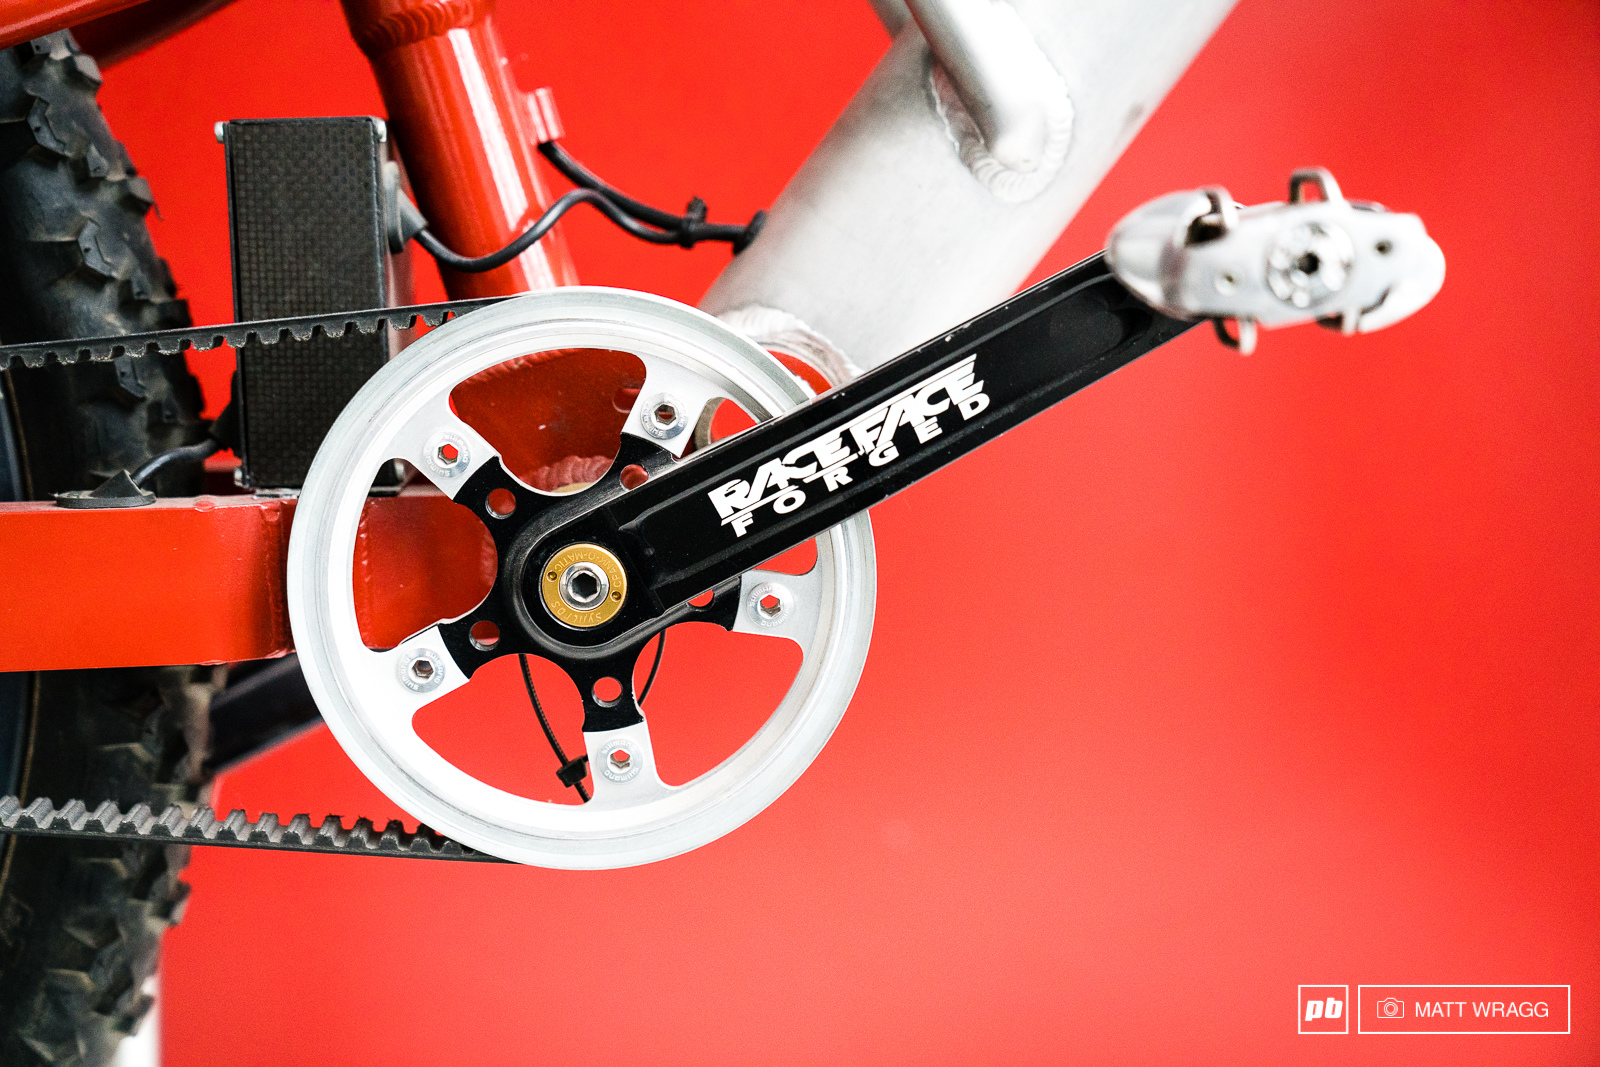 They constructed a special chainring to accomodate the belt and mounted it to a standard Raceface crank.